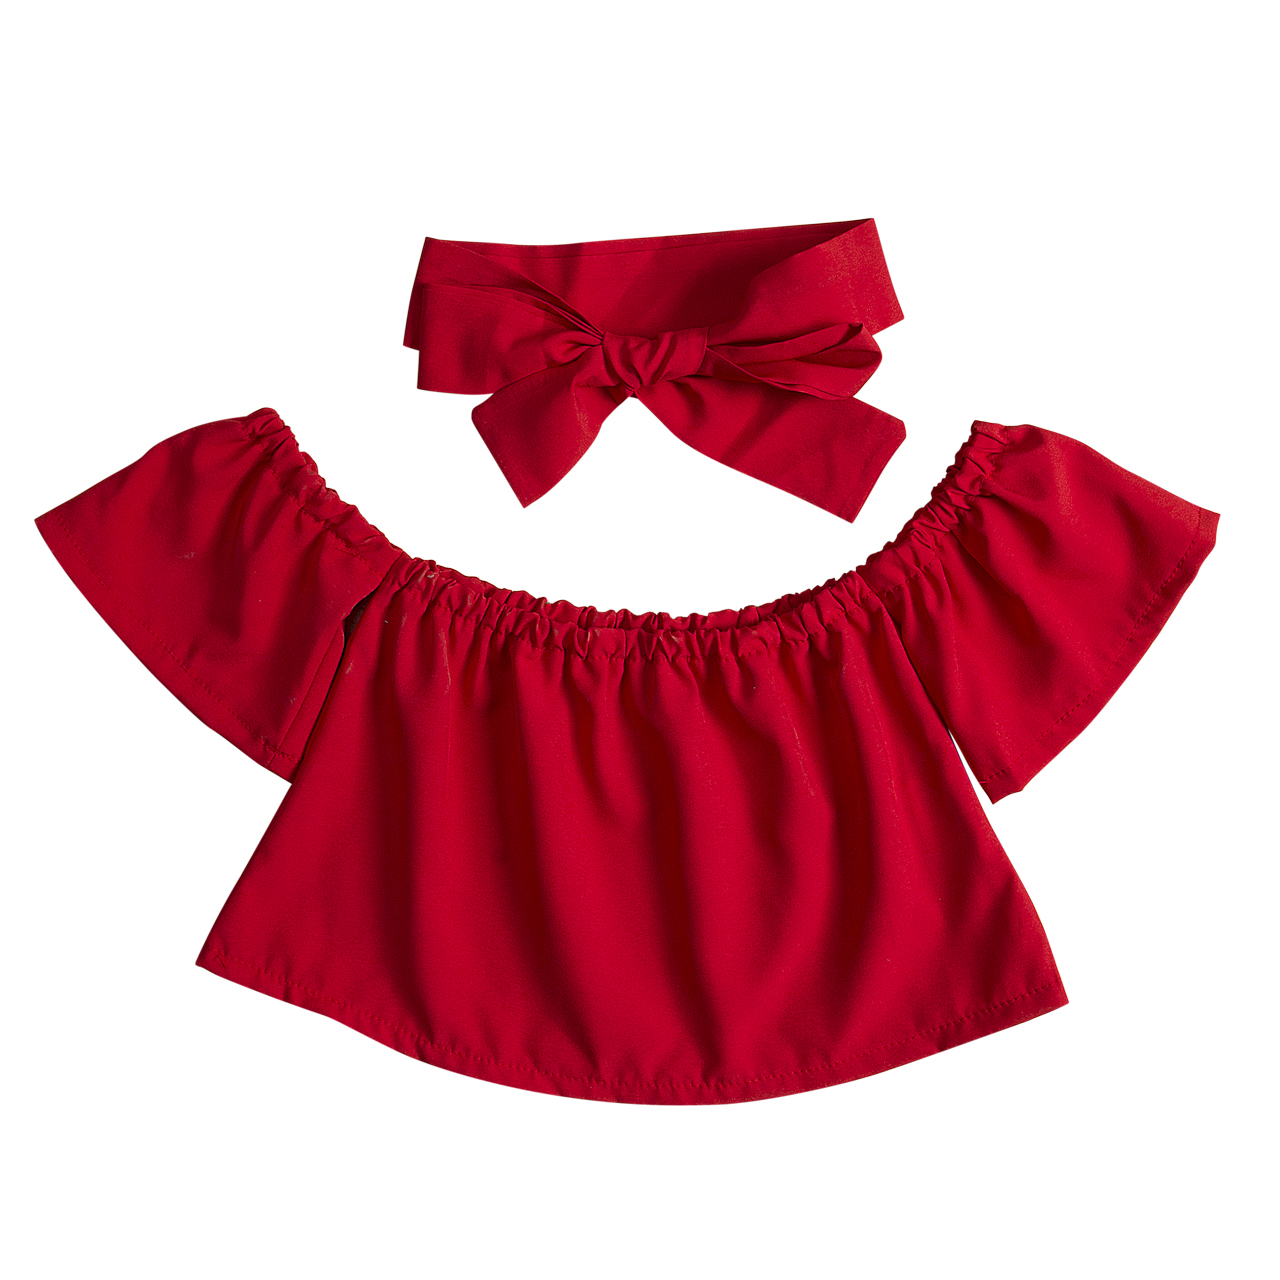 Toddler Infant Children Kids Baby Girl Clothes Outfits Off Shoulder T shirt Tops Bowknot Headband 2pcs Solid Baby Girl Clothes